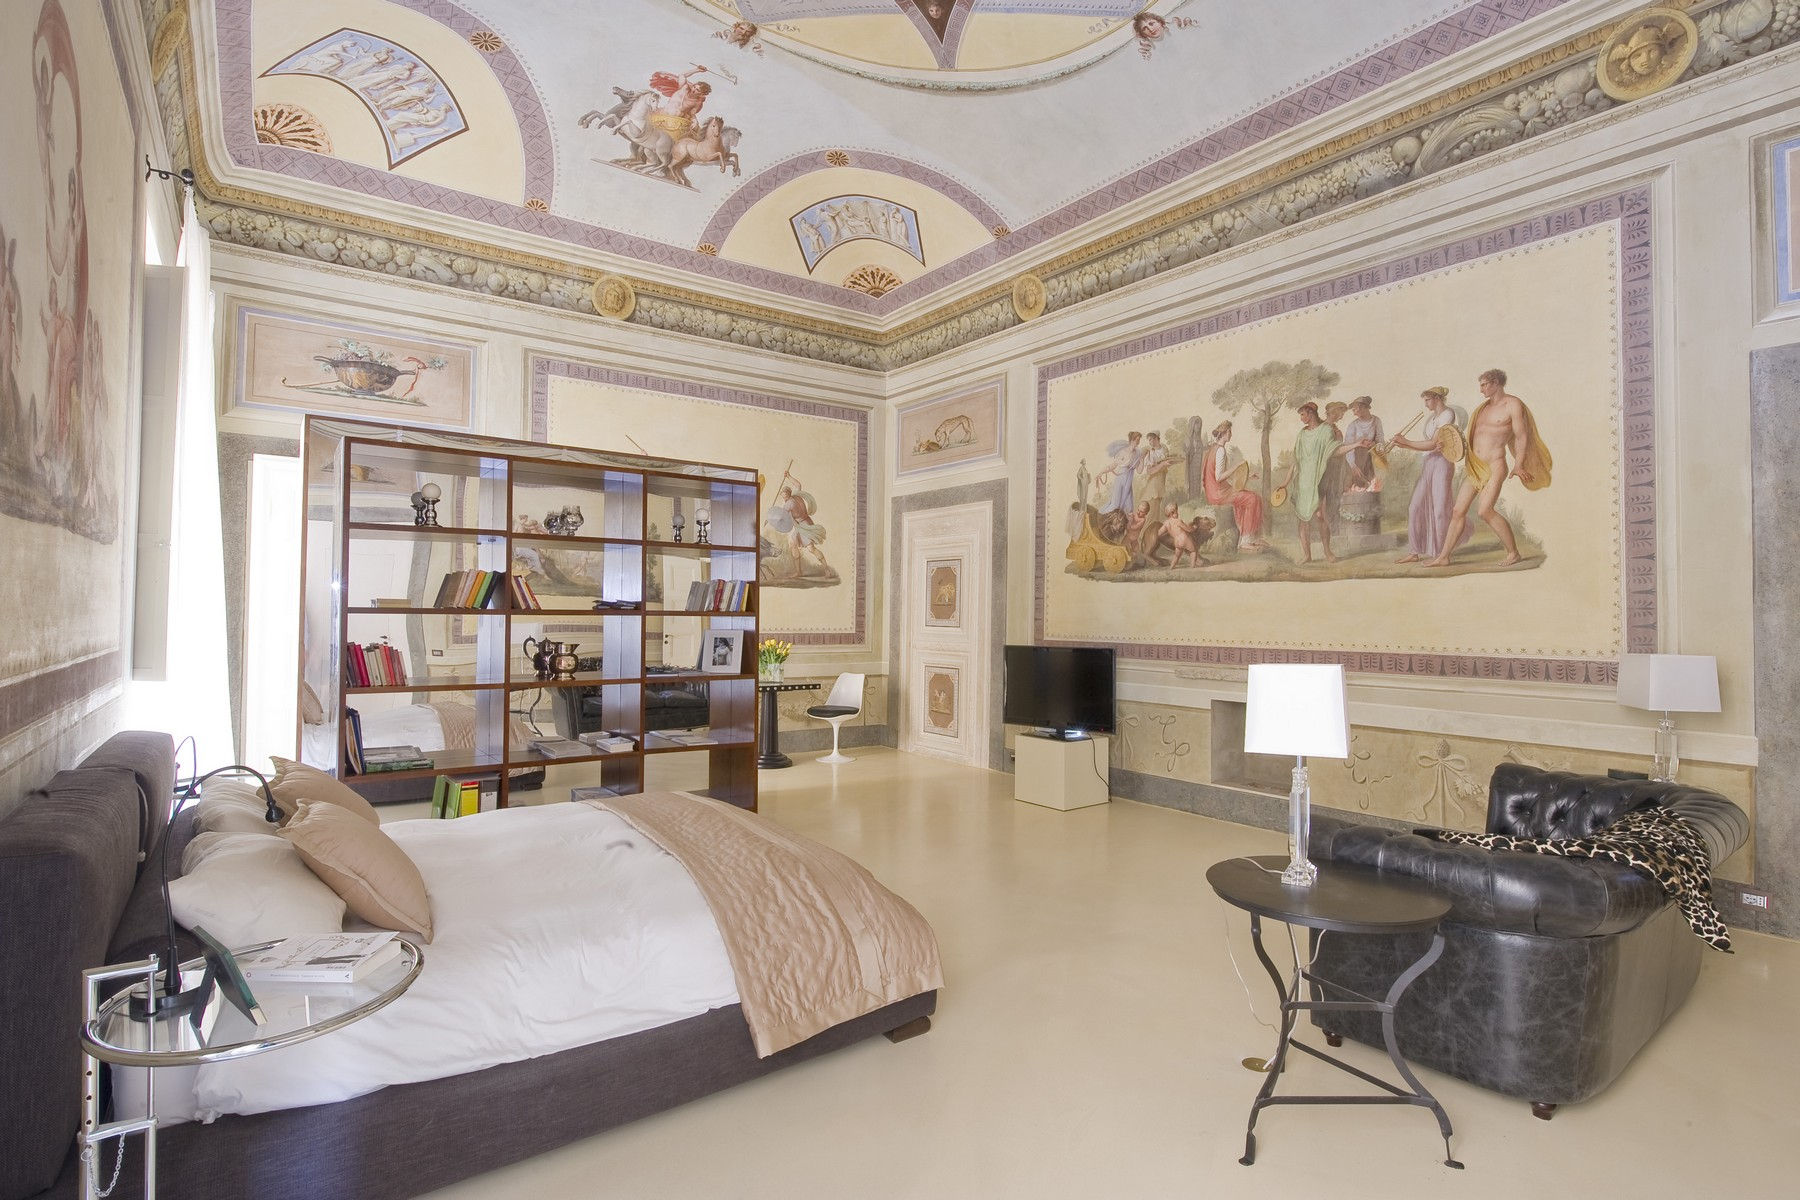 Apartment for Sale at Historic Opera Apartment in the heart of Florence Via de' Benci Firenze, 50122 Italy